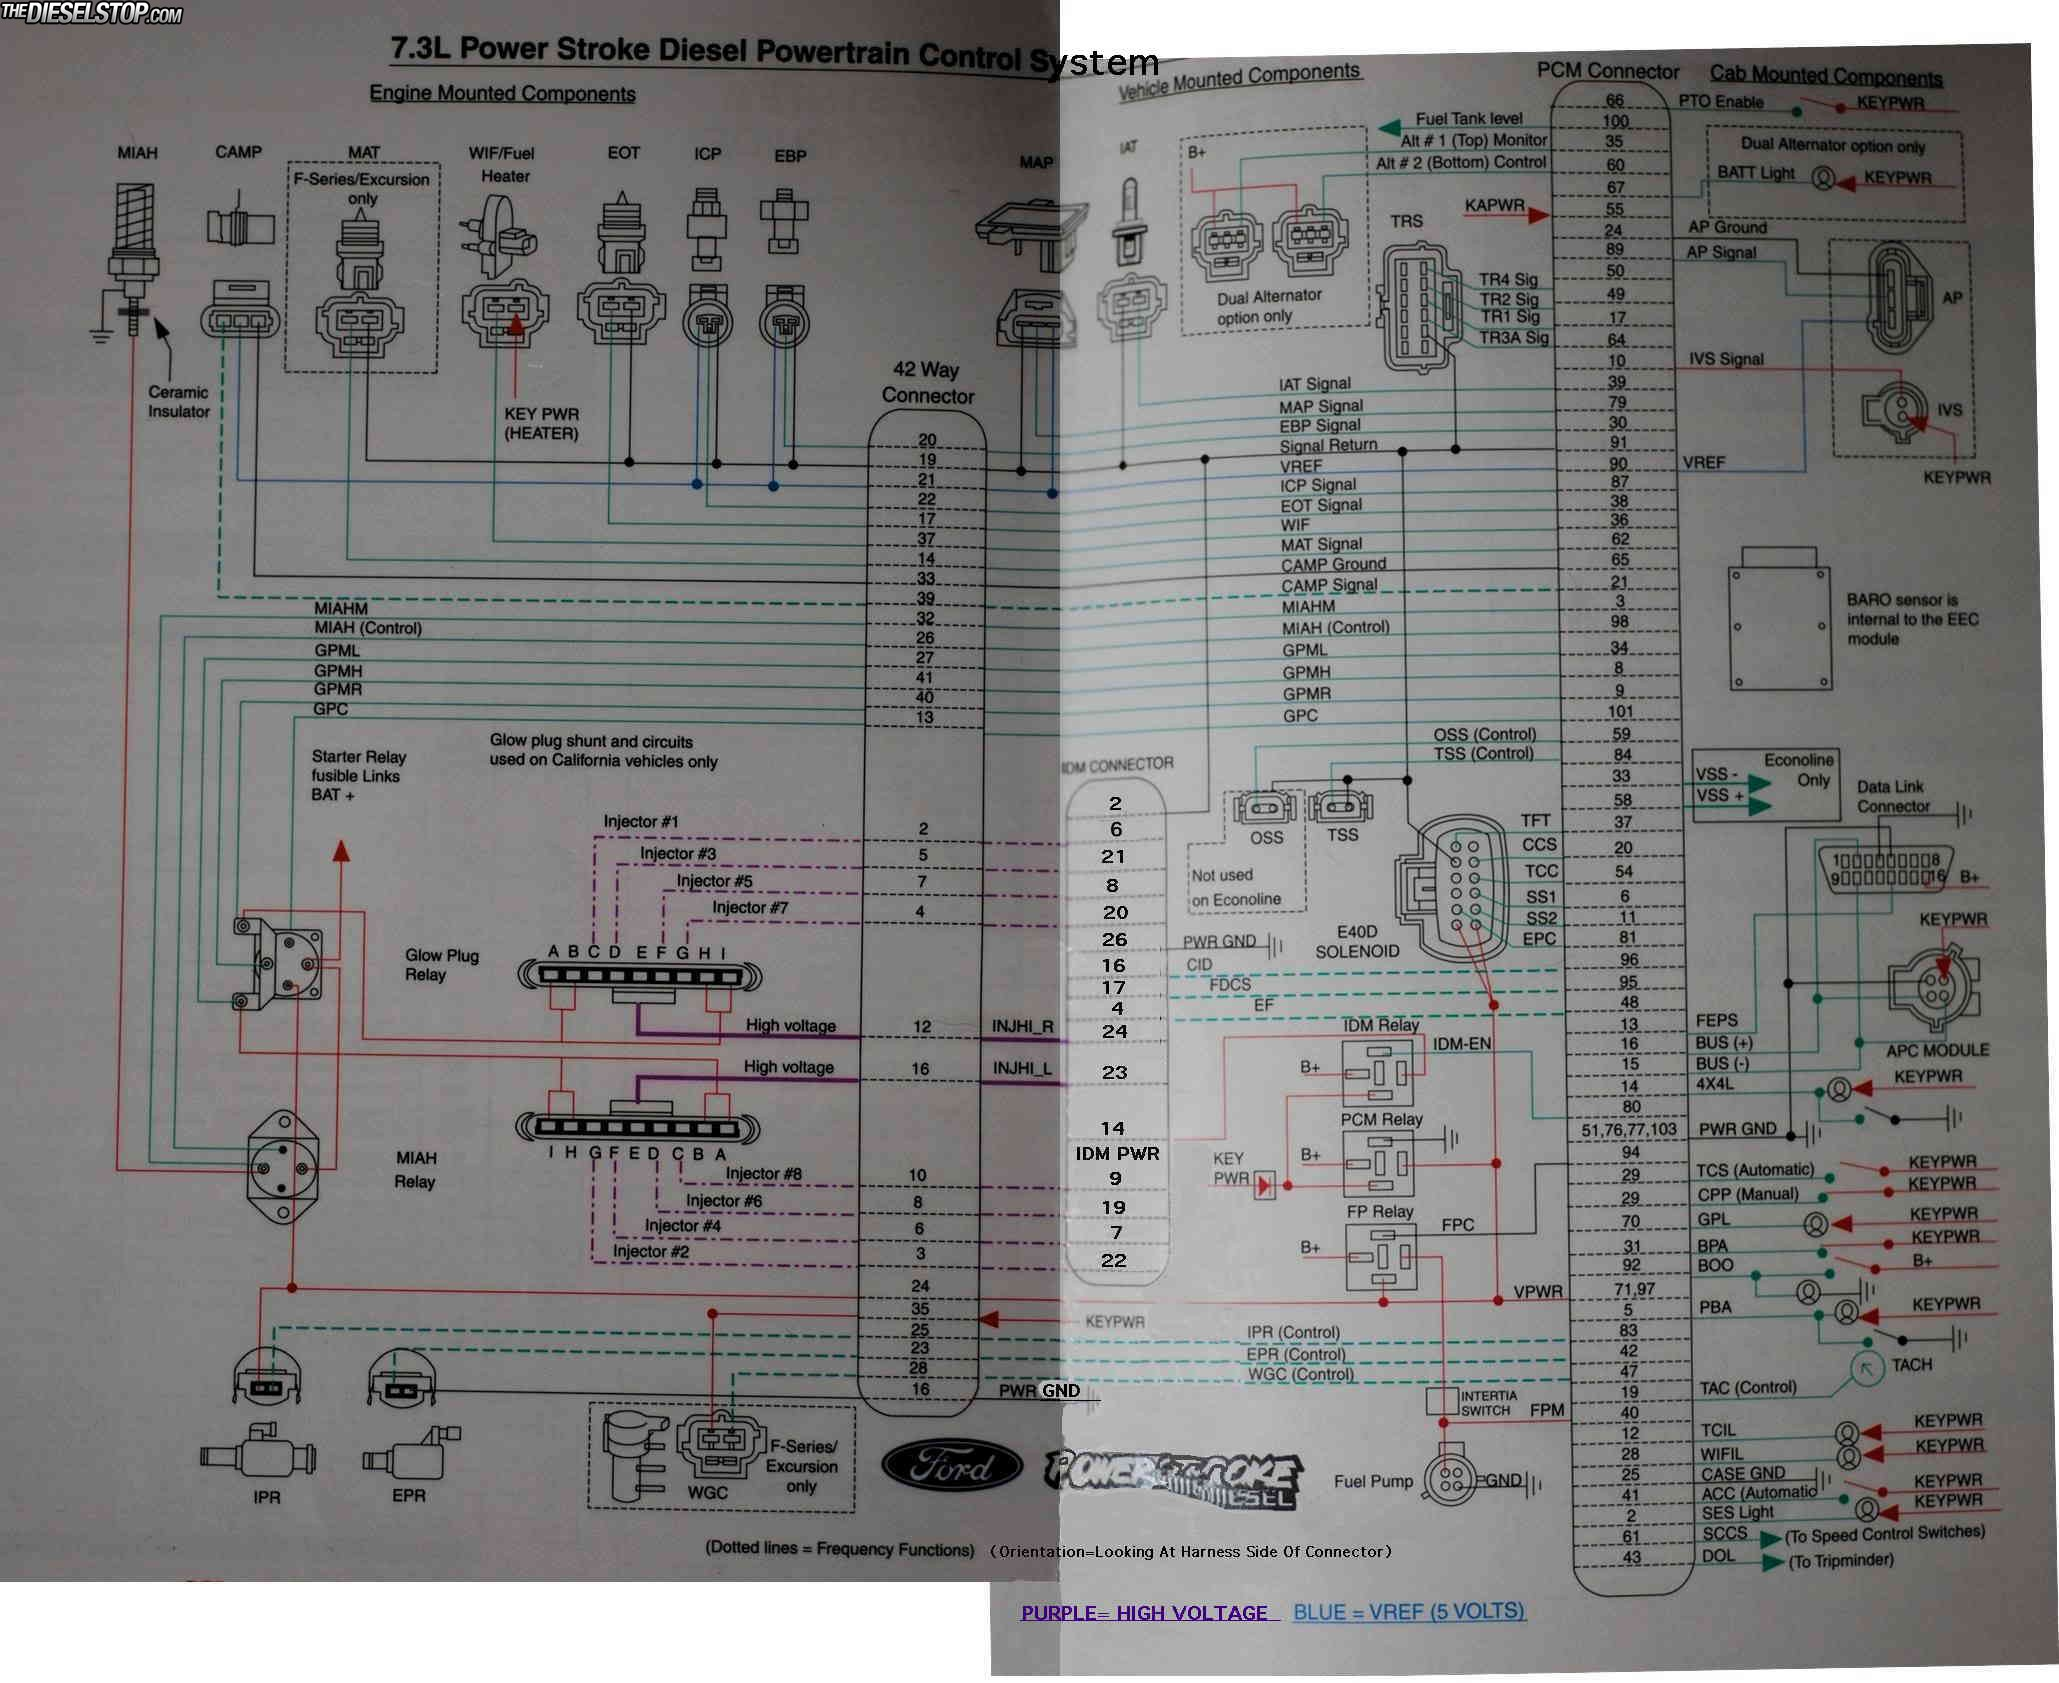 Ford F550 Wiring Diagram from www2.picturepush.com